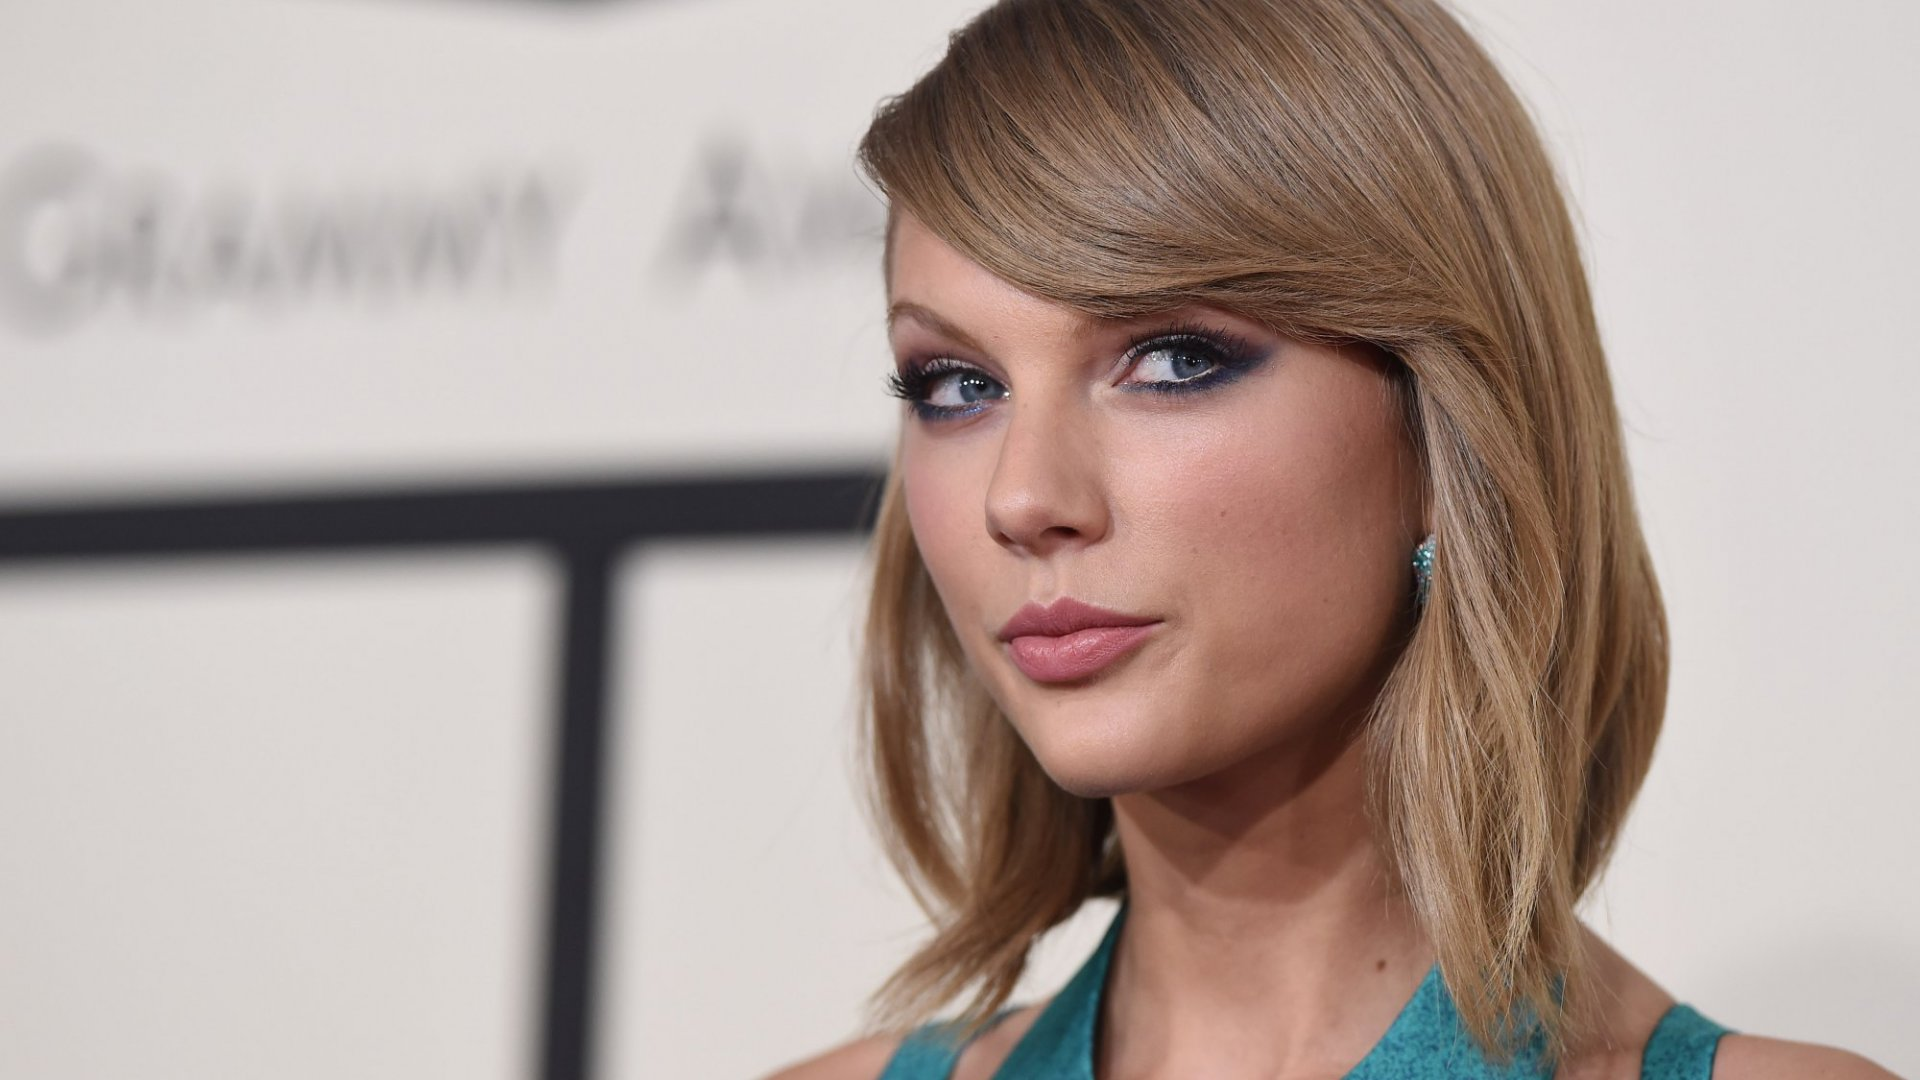 Real Leaders Do 4 Things Brilliantly. With Her Game-Changing Instagram Post, Taylor Swift Did Them All